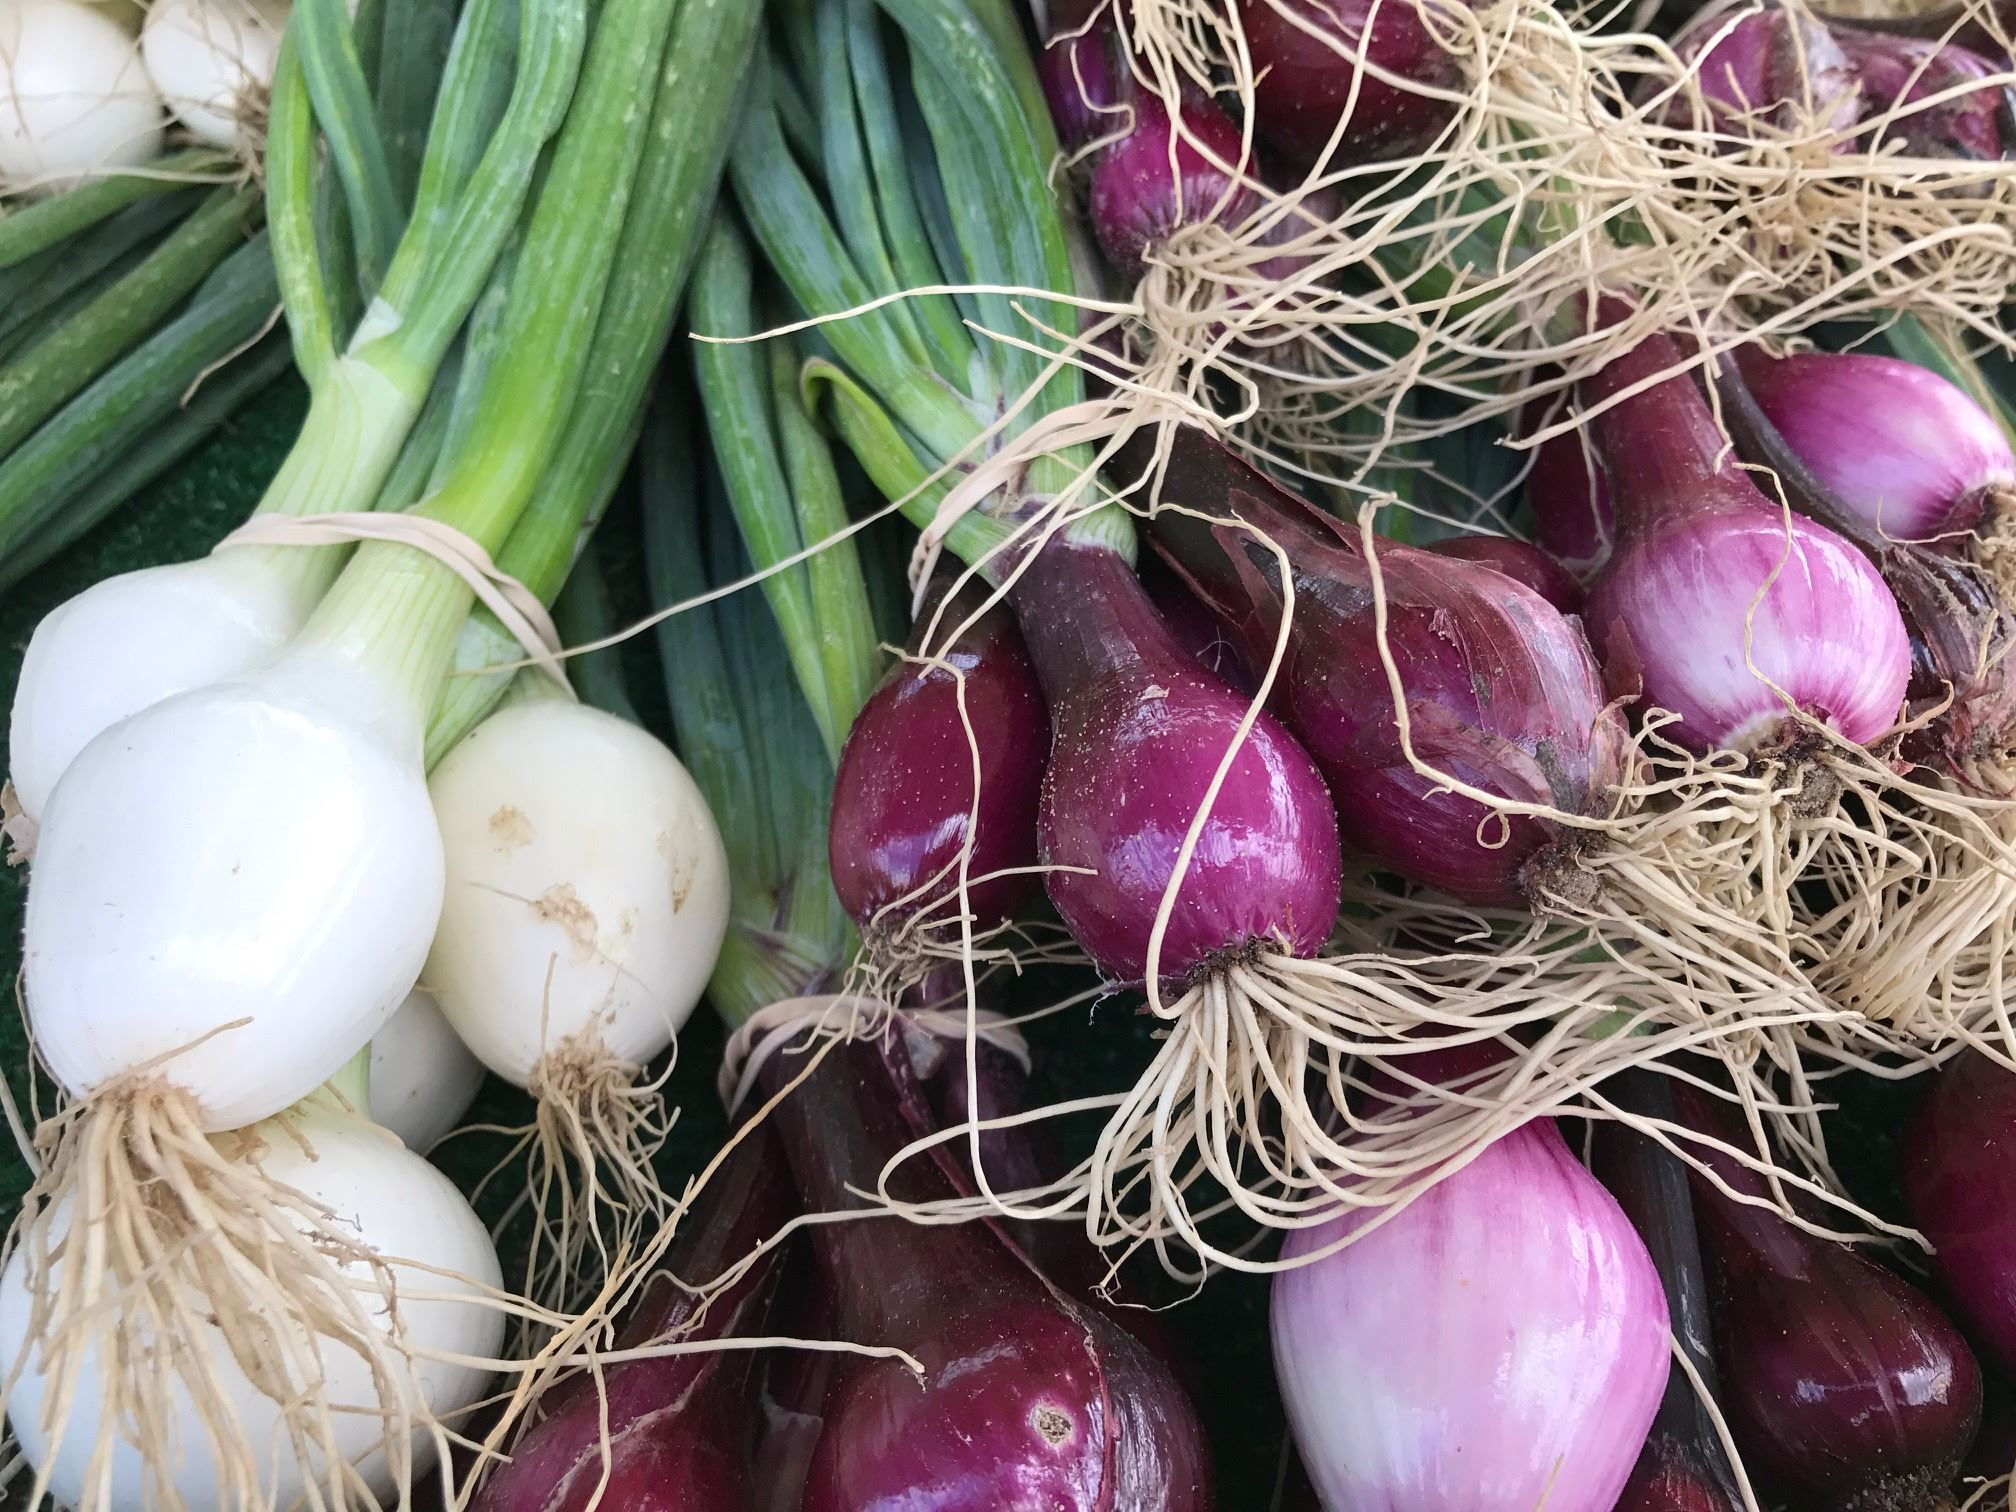 Spring Onions Market Days